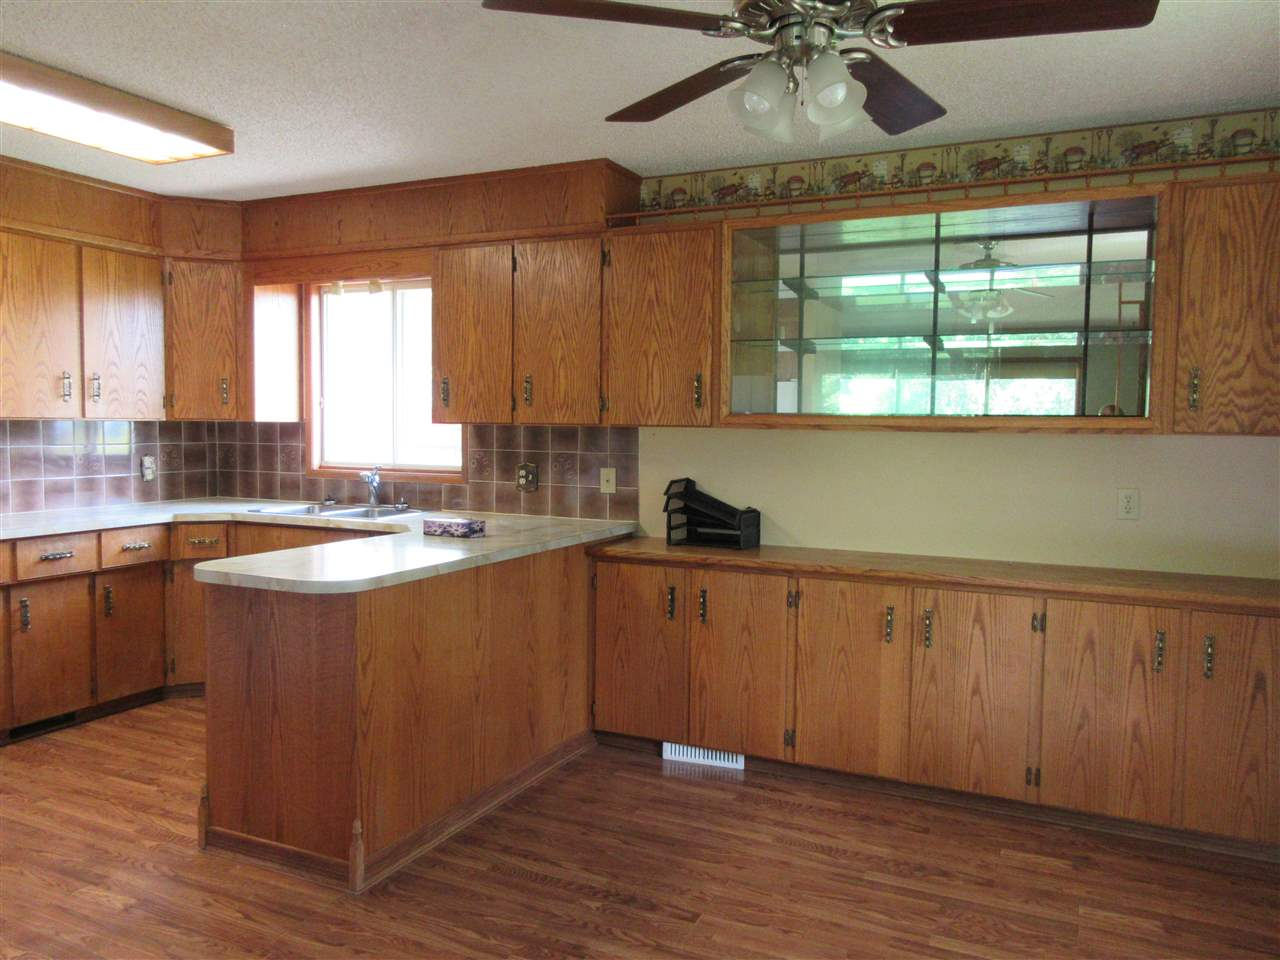 Photo 4: 60515 RR 223: Rural Thorhild County House for sale : MLS® # E4073917